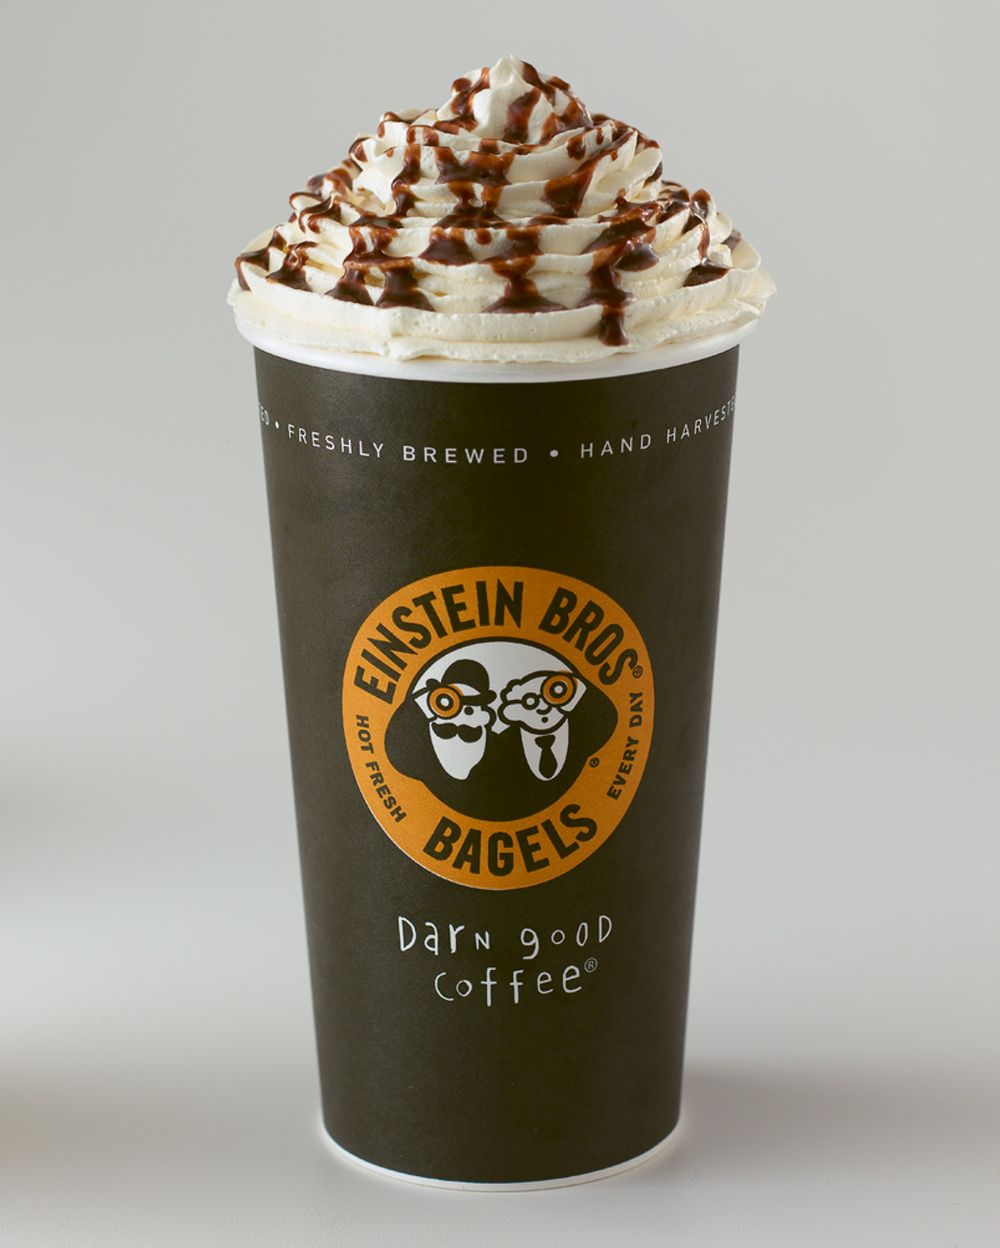 einstein-bros-mocha-coffee-drink-food-stylist-san-francisco.jpg